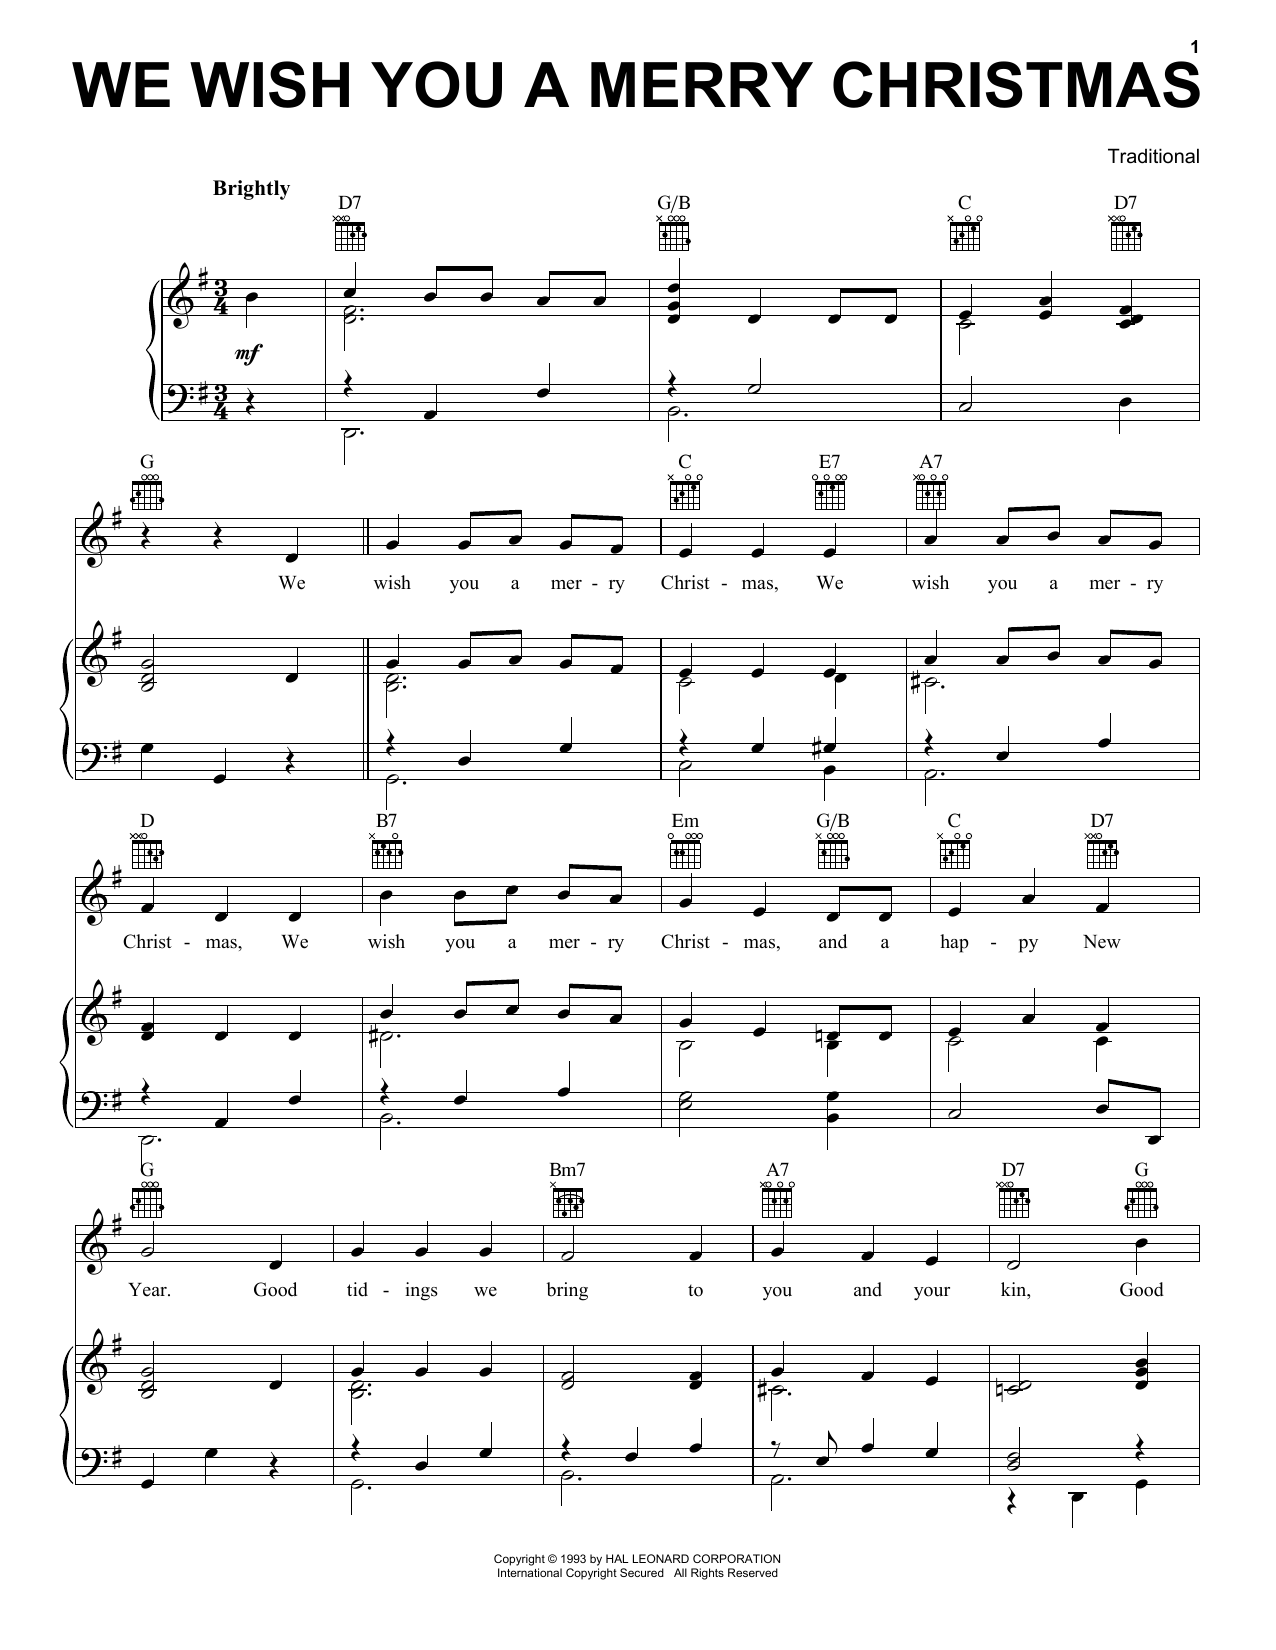 Sheet Music Digital Files To Print Licensed Traditional English